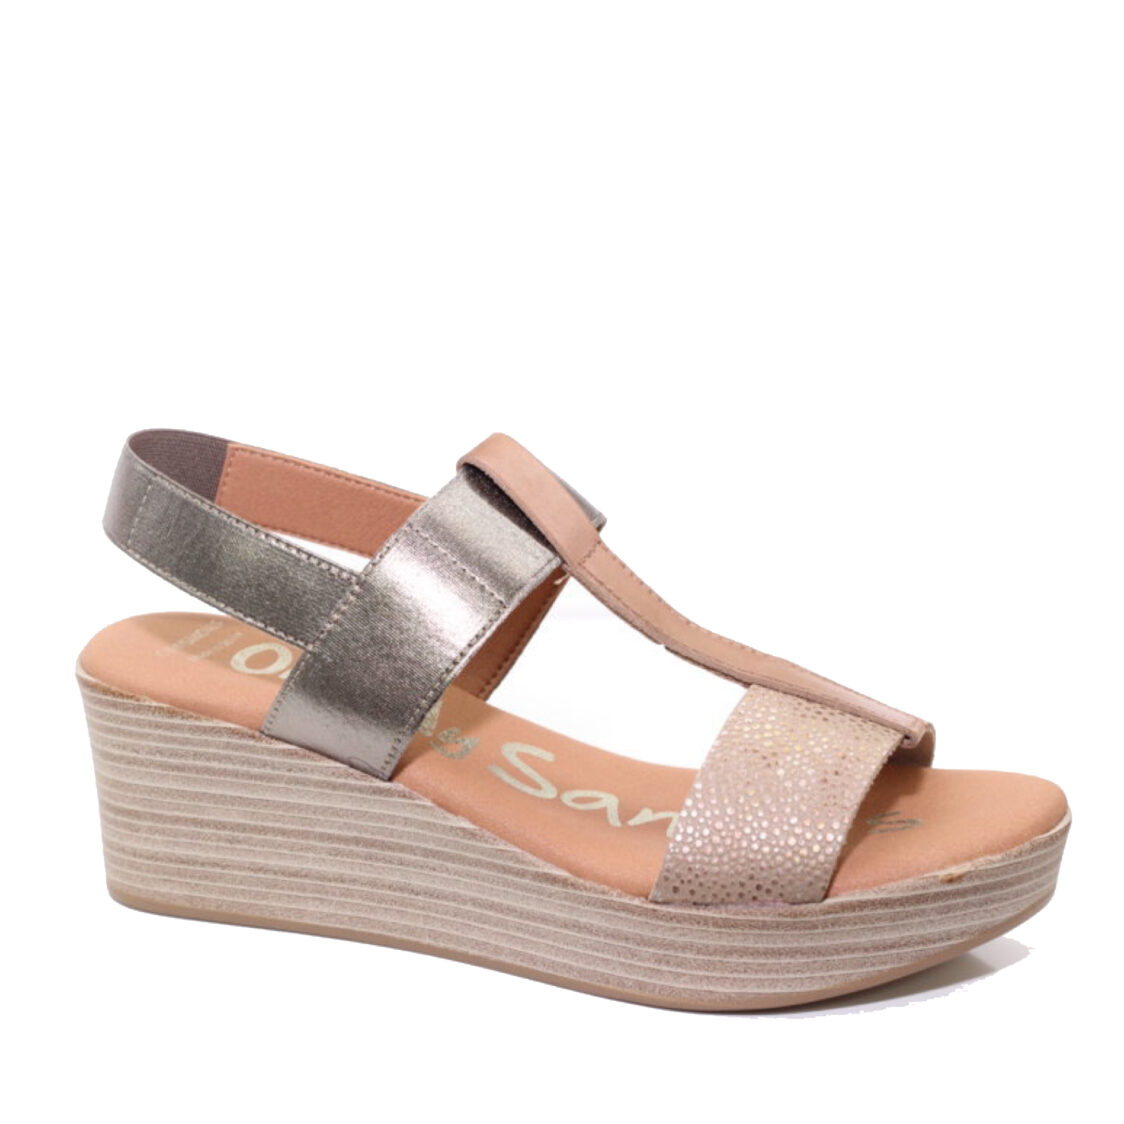 OH MY SANDALS Wedge 2 Pink